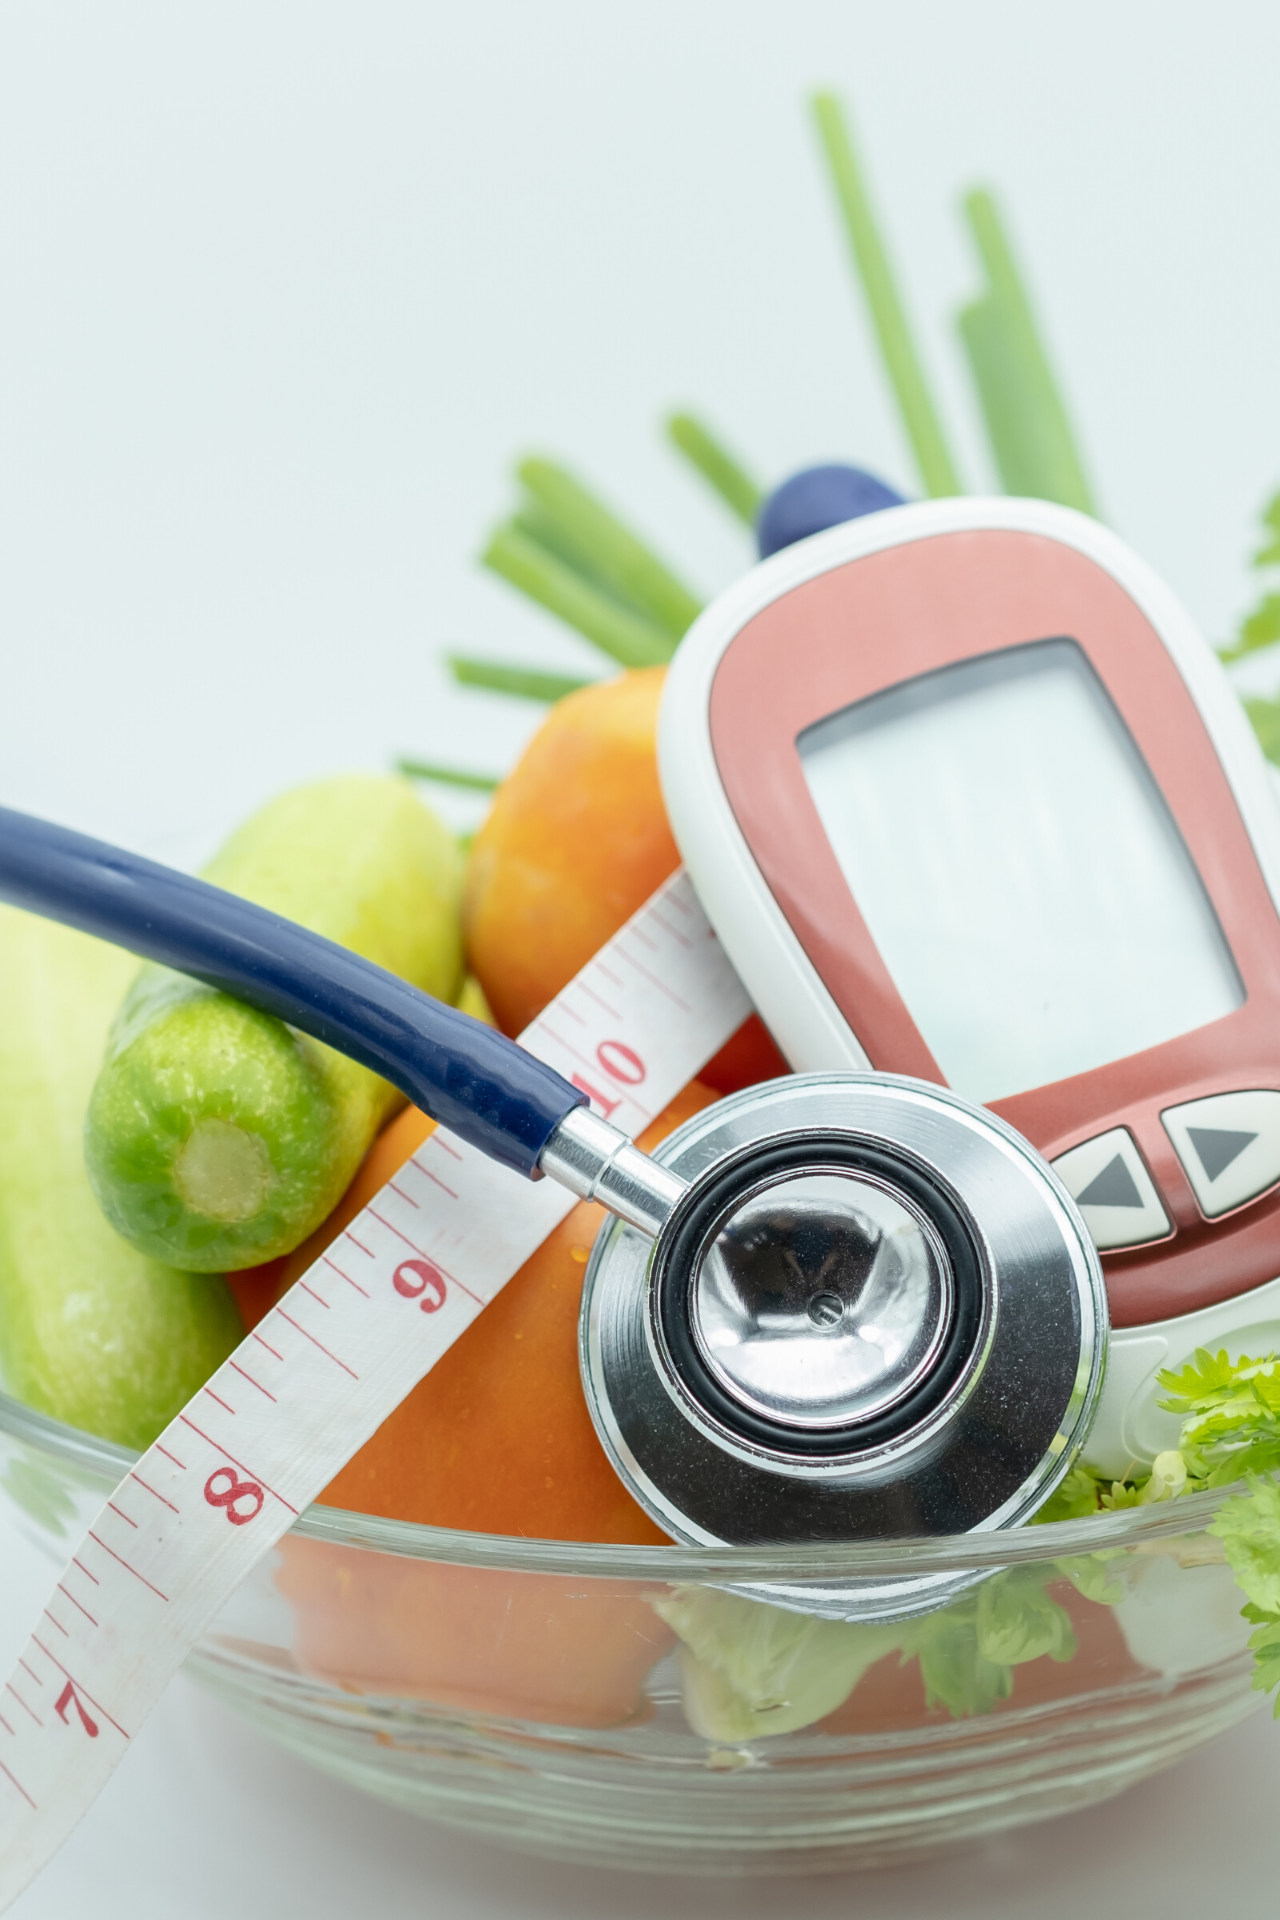 National Diabetes Awareness Month: Why Nutrition Matters